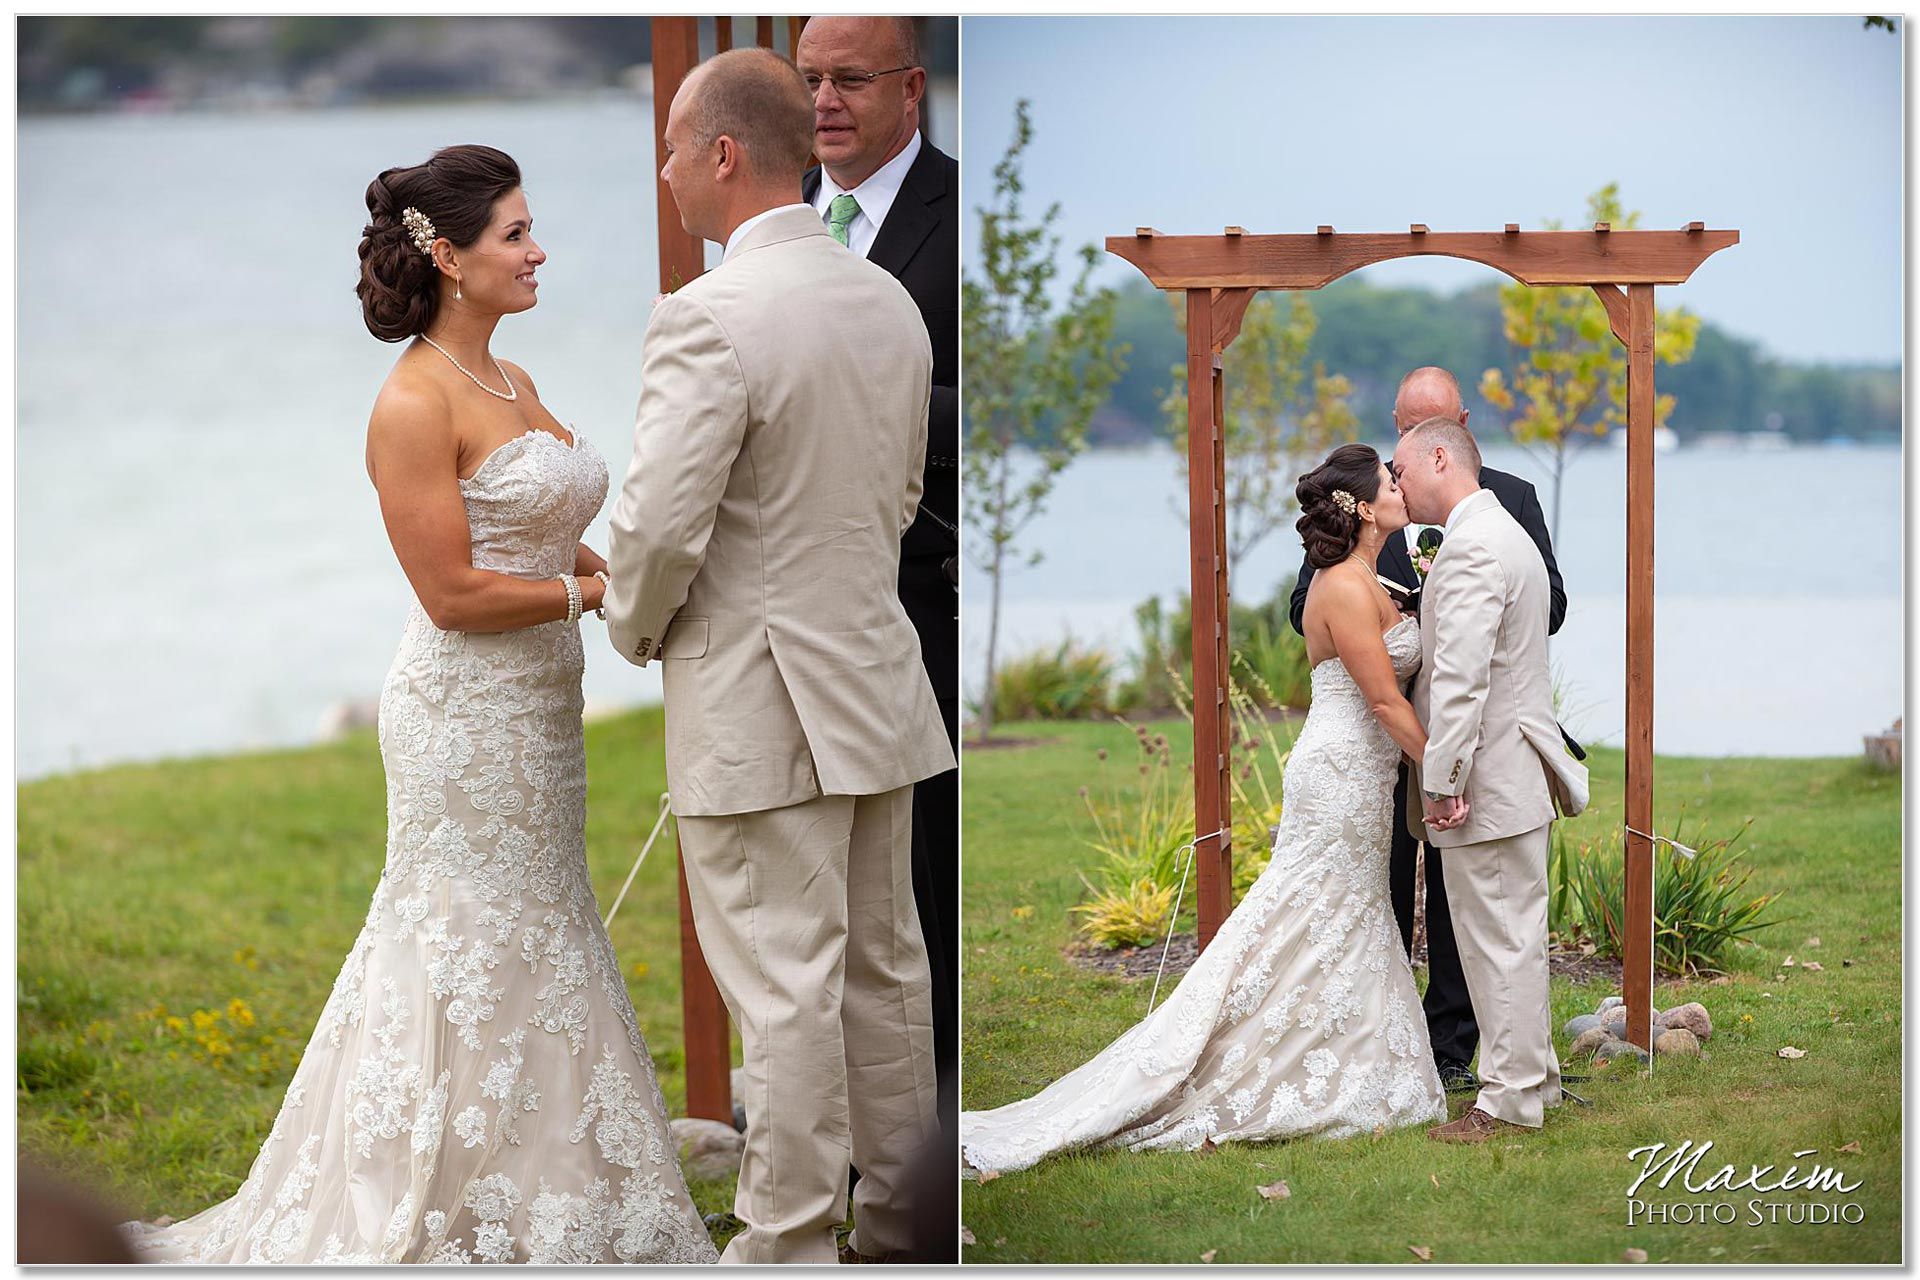 Clear Lake Kusota Island wedding ceremony